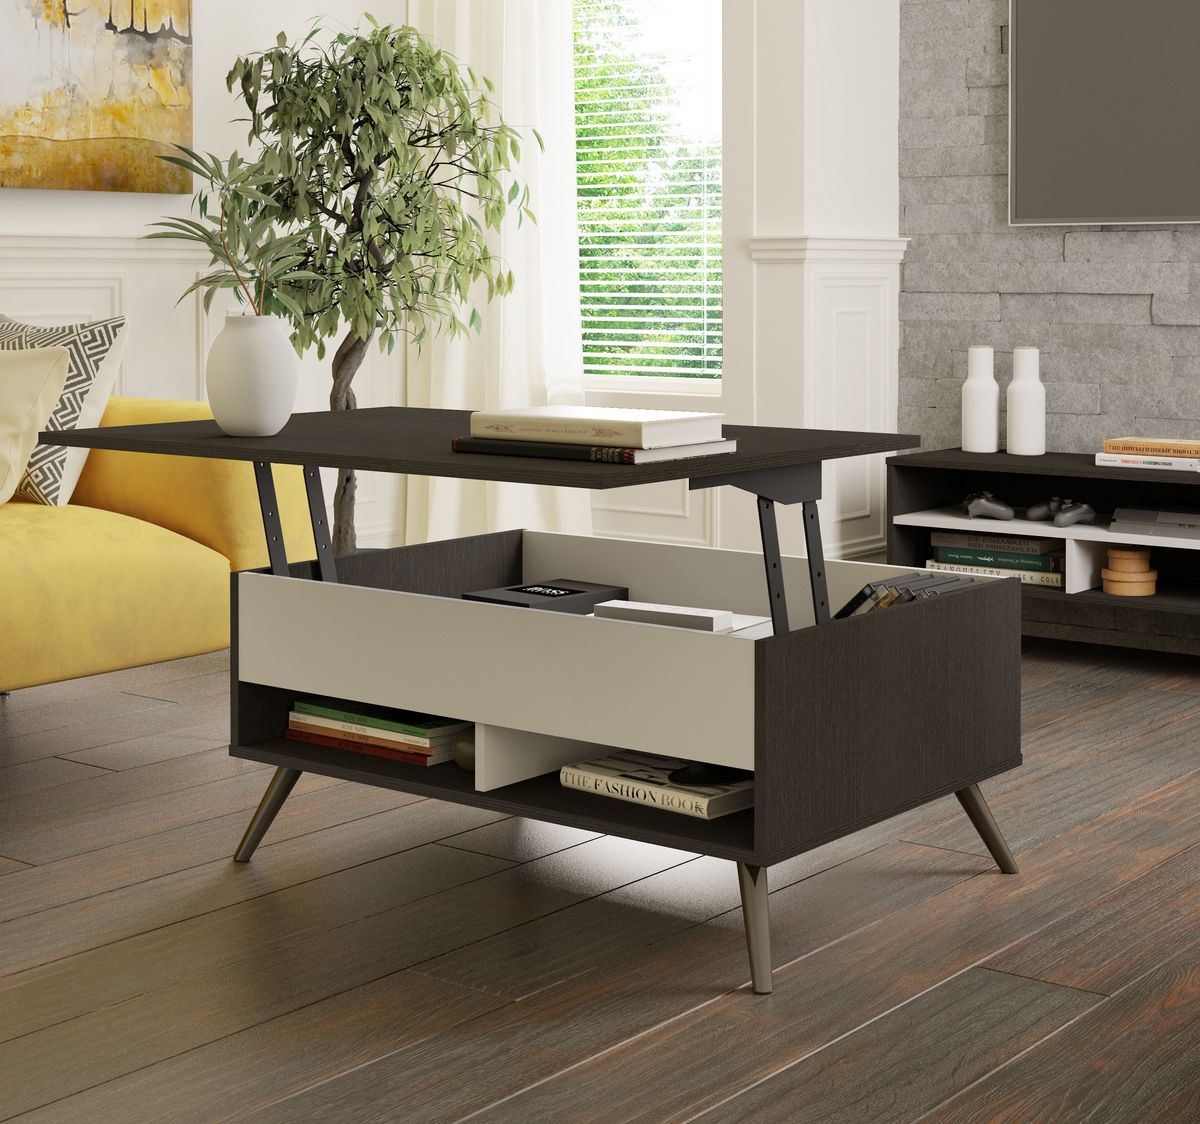 Small Space Krom 37 Inch Lift Top Storage Coffee Table In Deep Grey White Bestar In 2021 Coffee Table Rectangle Coffee Table With Storage Rectangular Coffee Table [ 1124 x 1200 Pixel ]